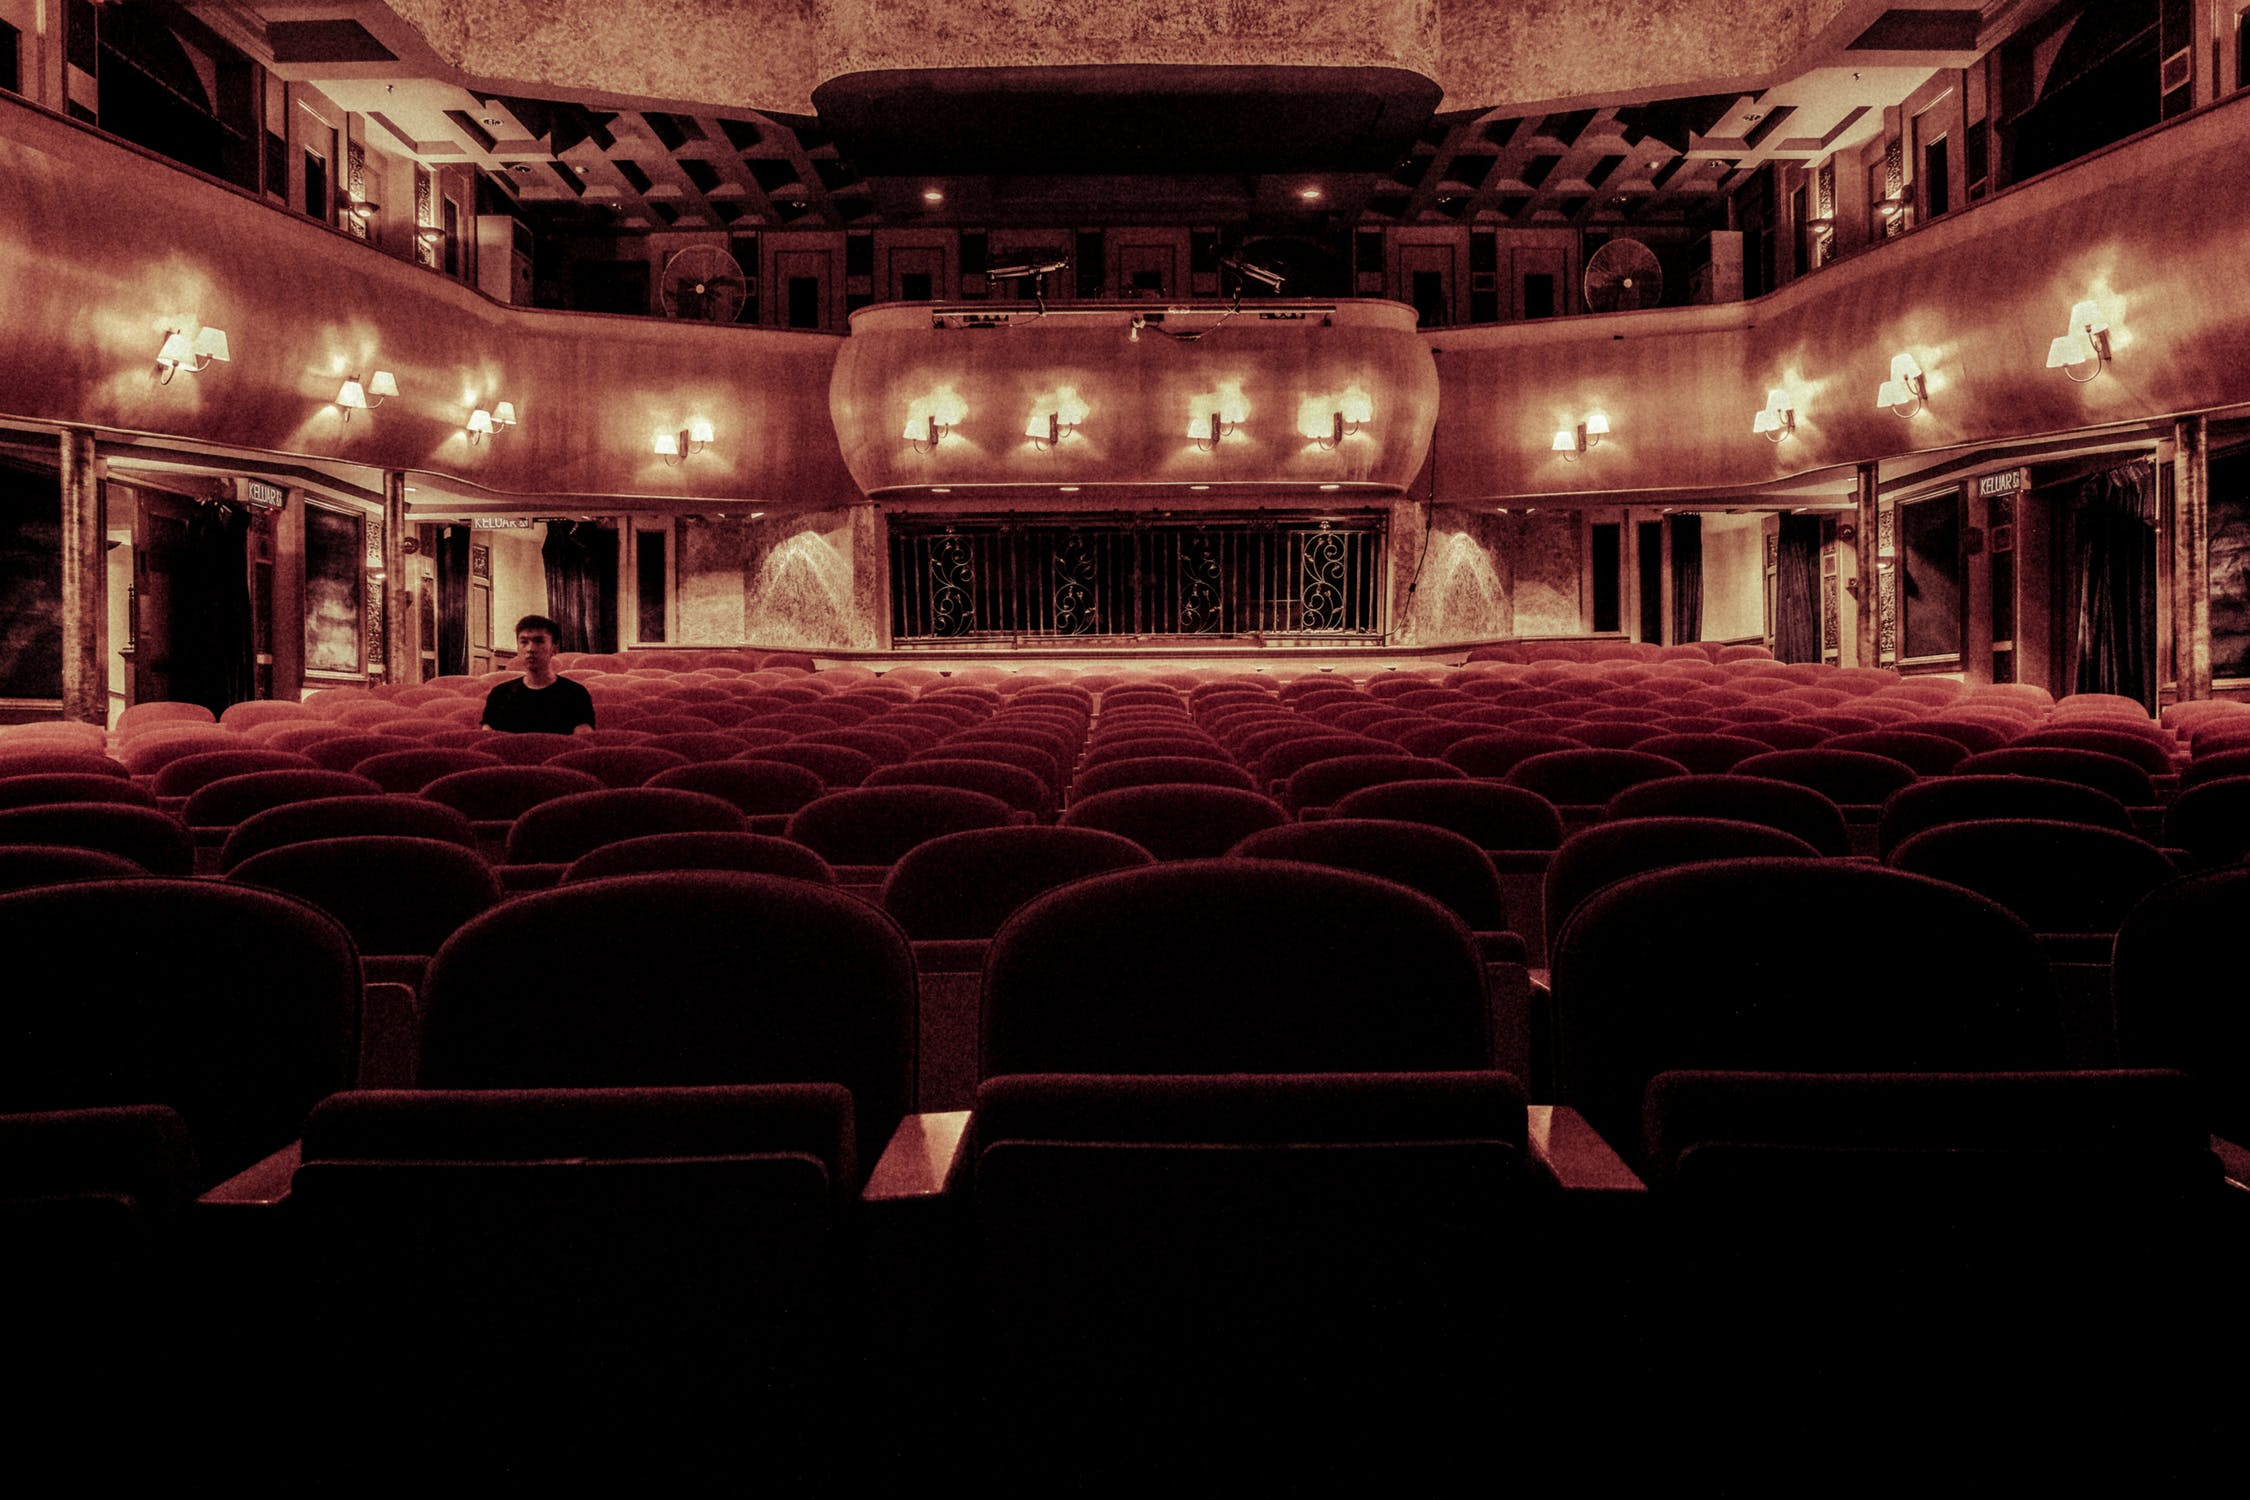 Top theatres in NYC to visit